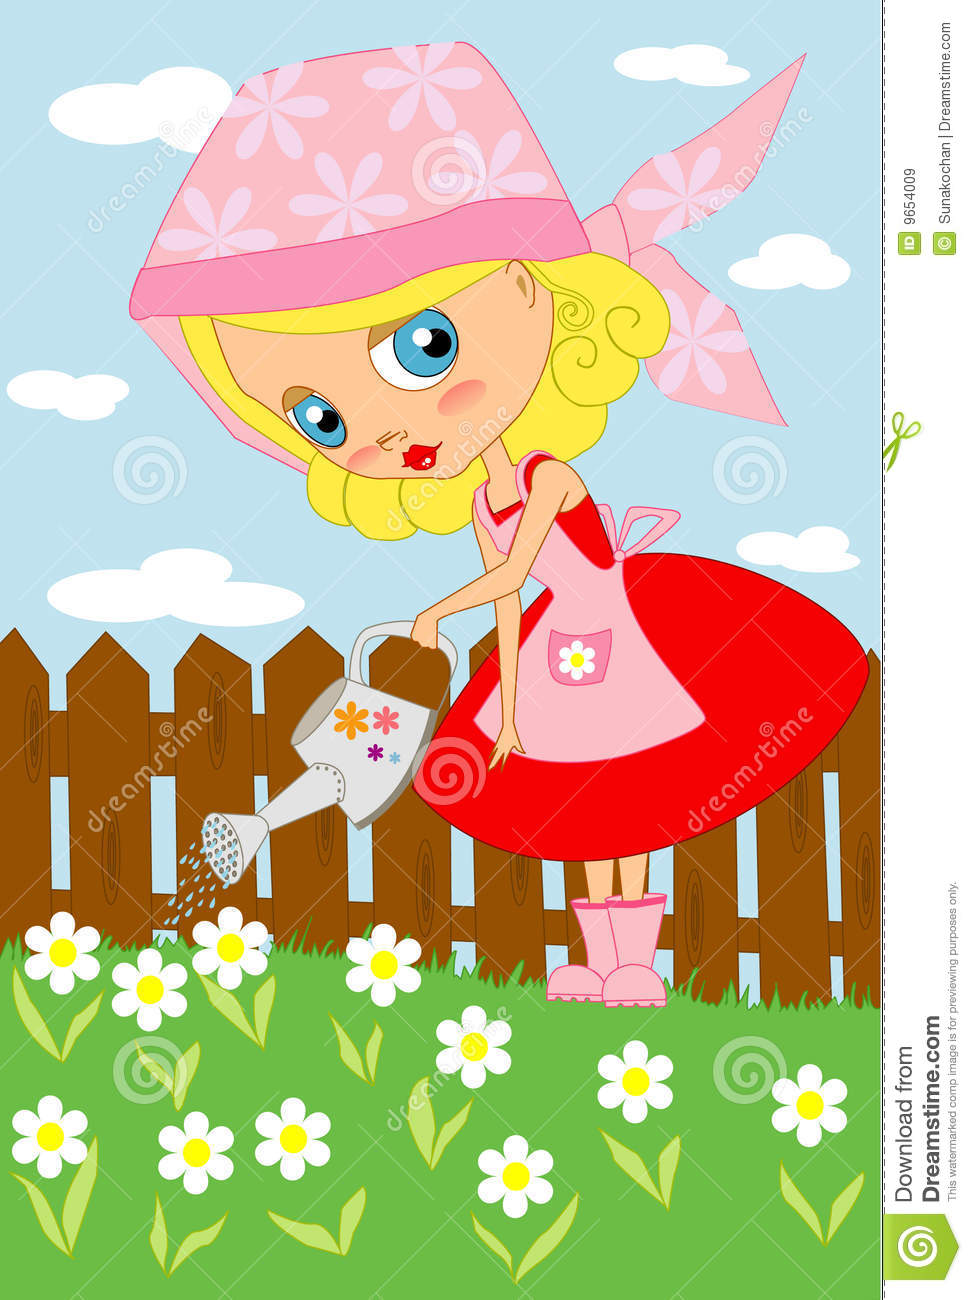 Garden my love royalty free stock images image 9654009 for Gardening is my passion